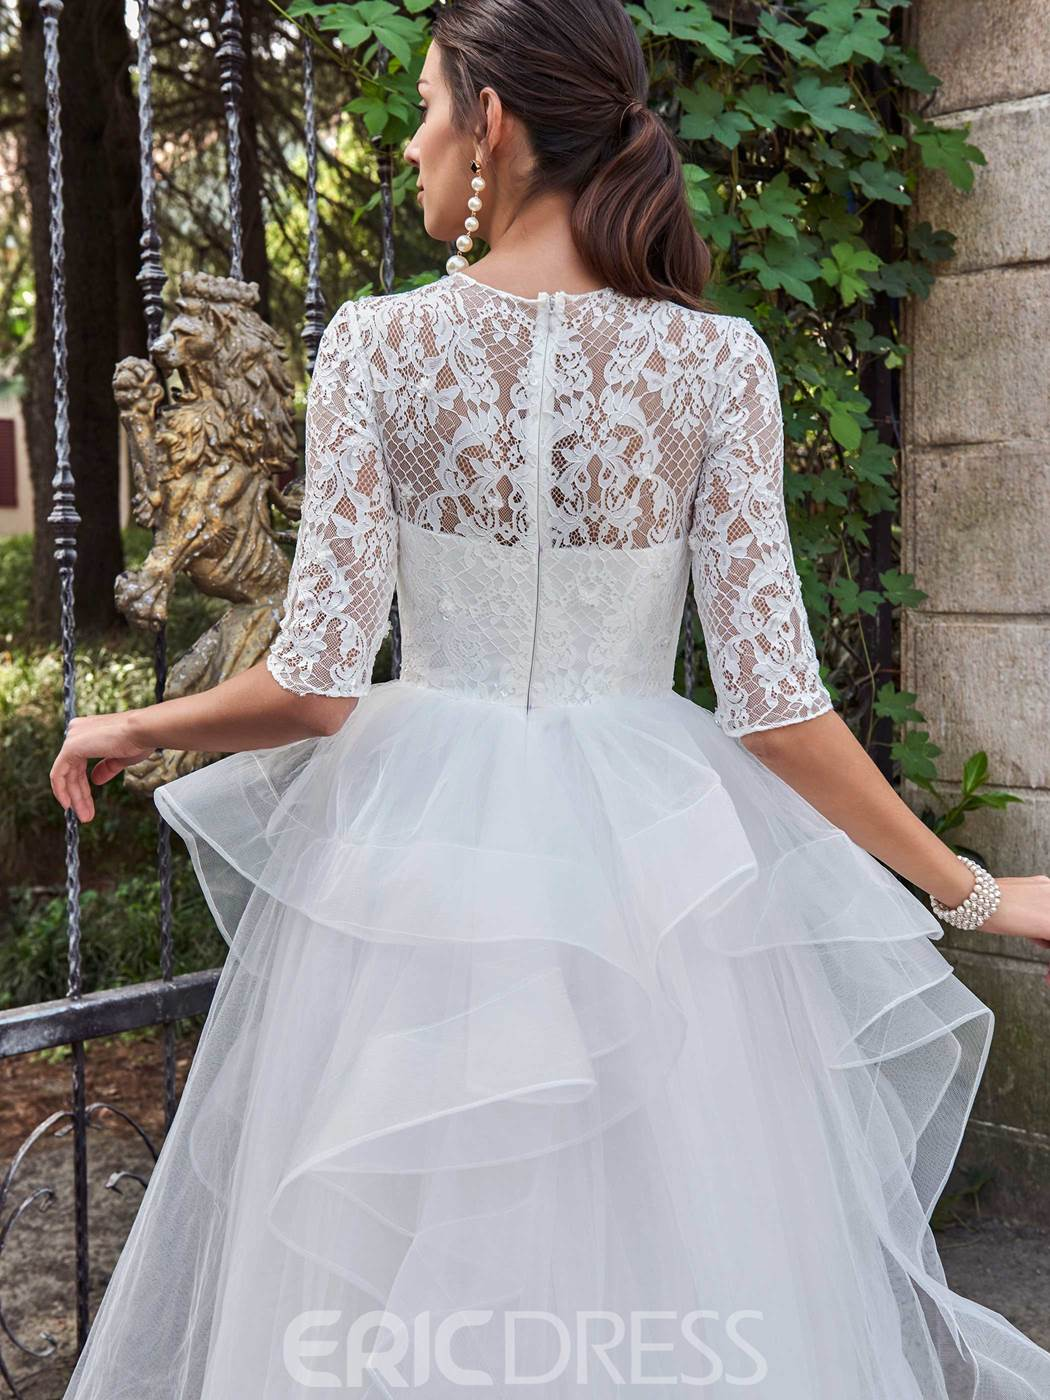 Ericdress Tiered Lace Half Sleeve Ball Gown Wedding Dress